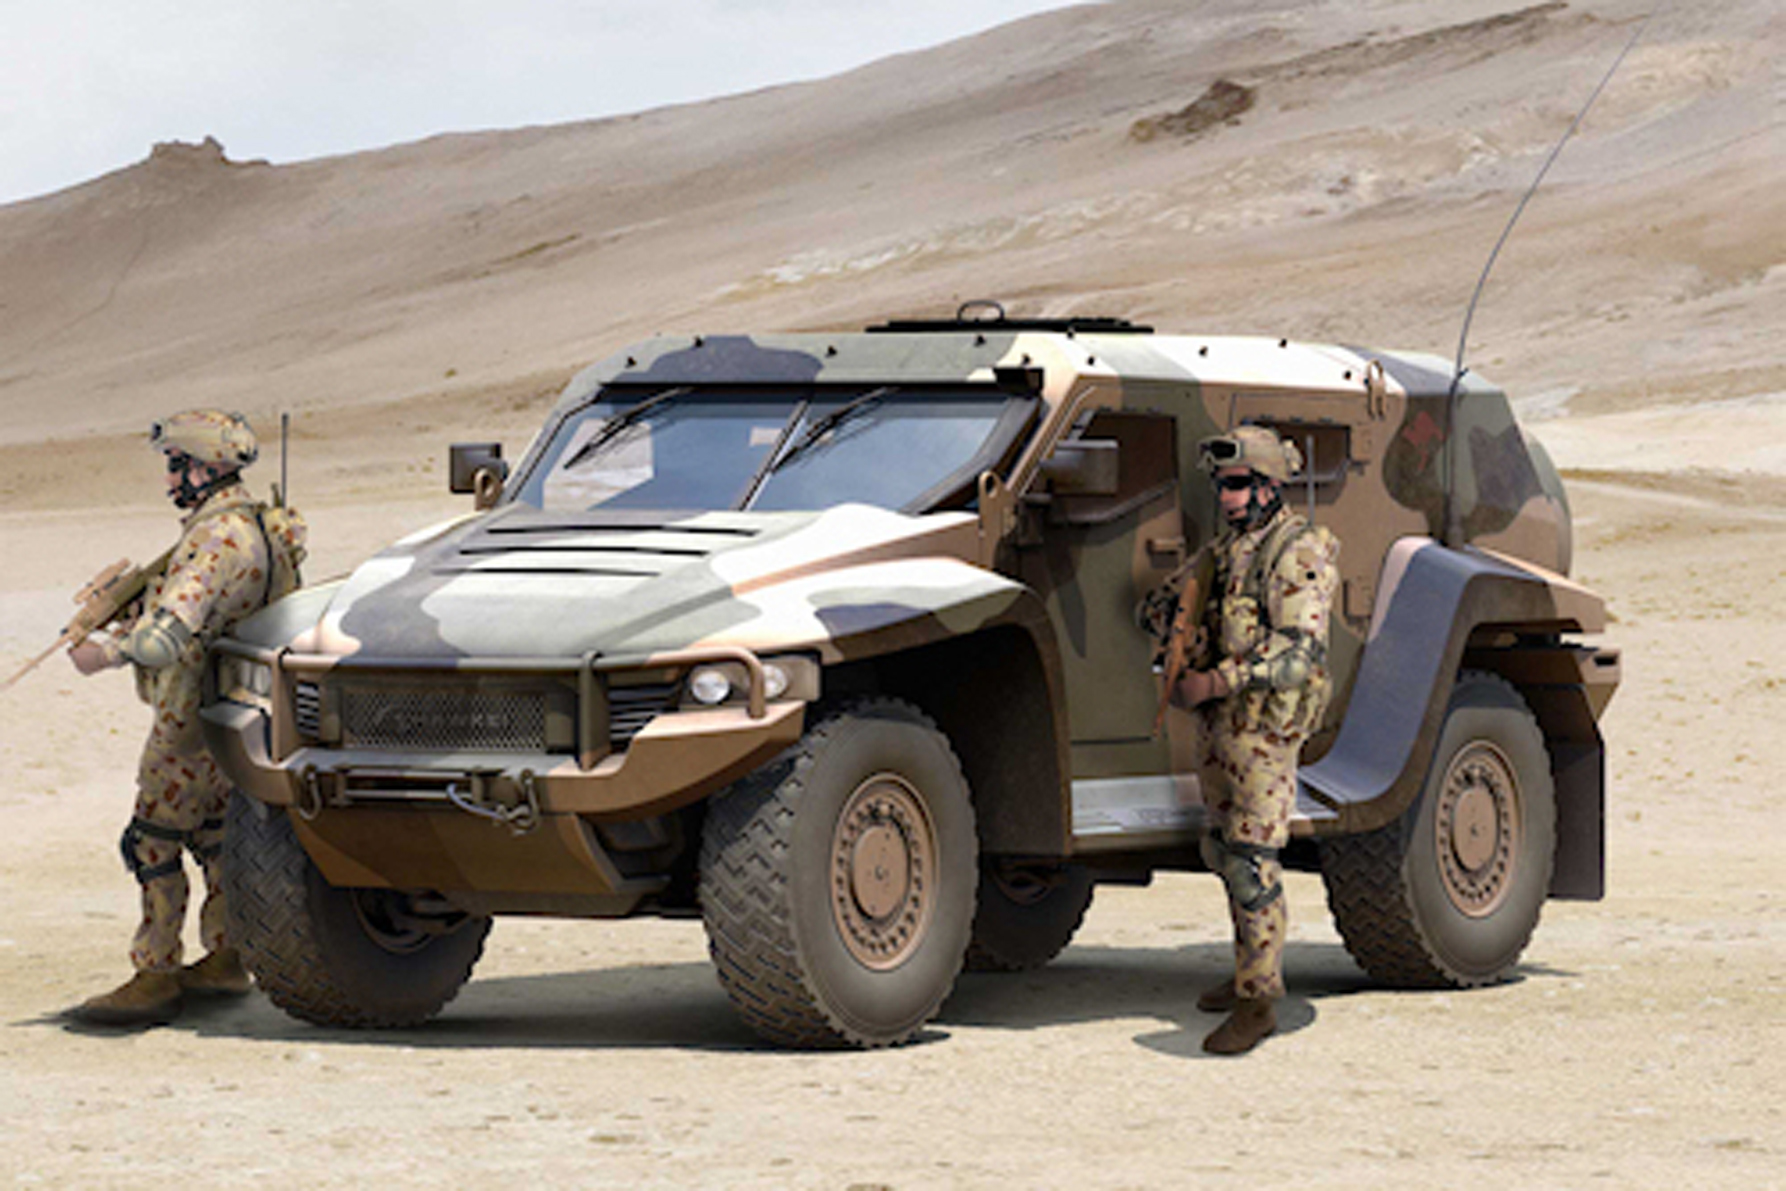 Australia selects Thales Hawkei